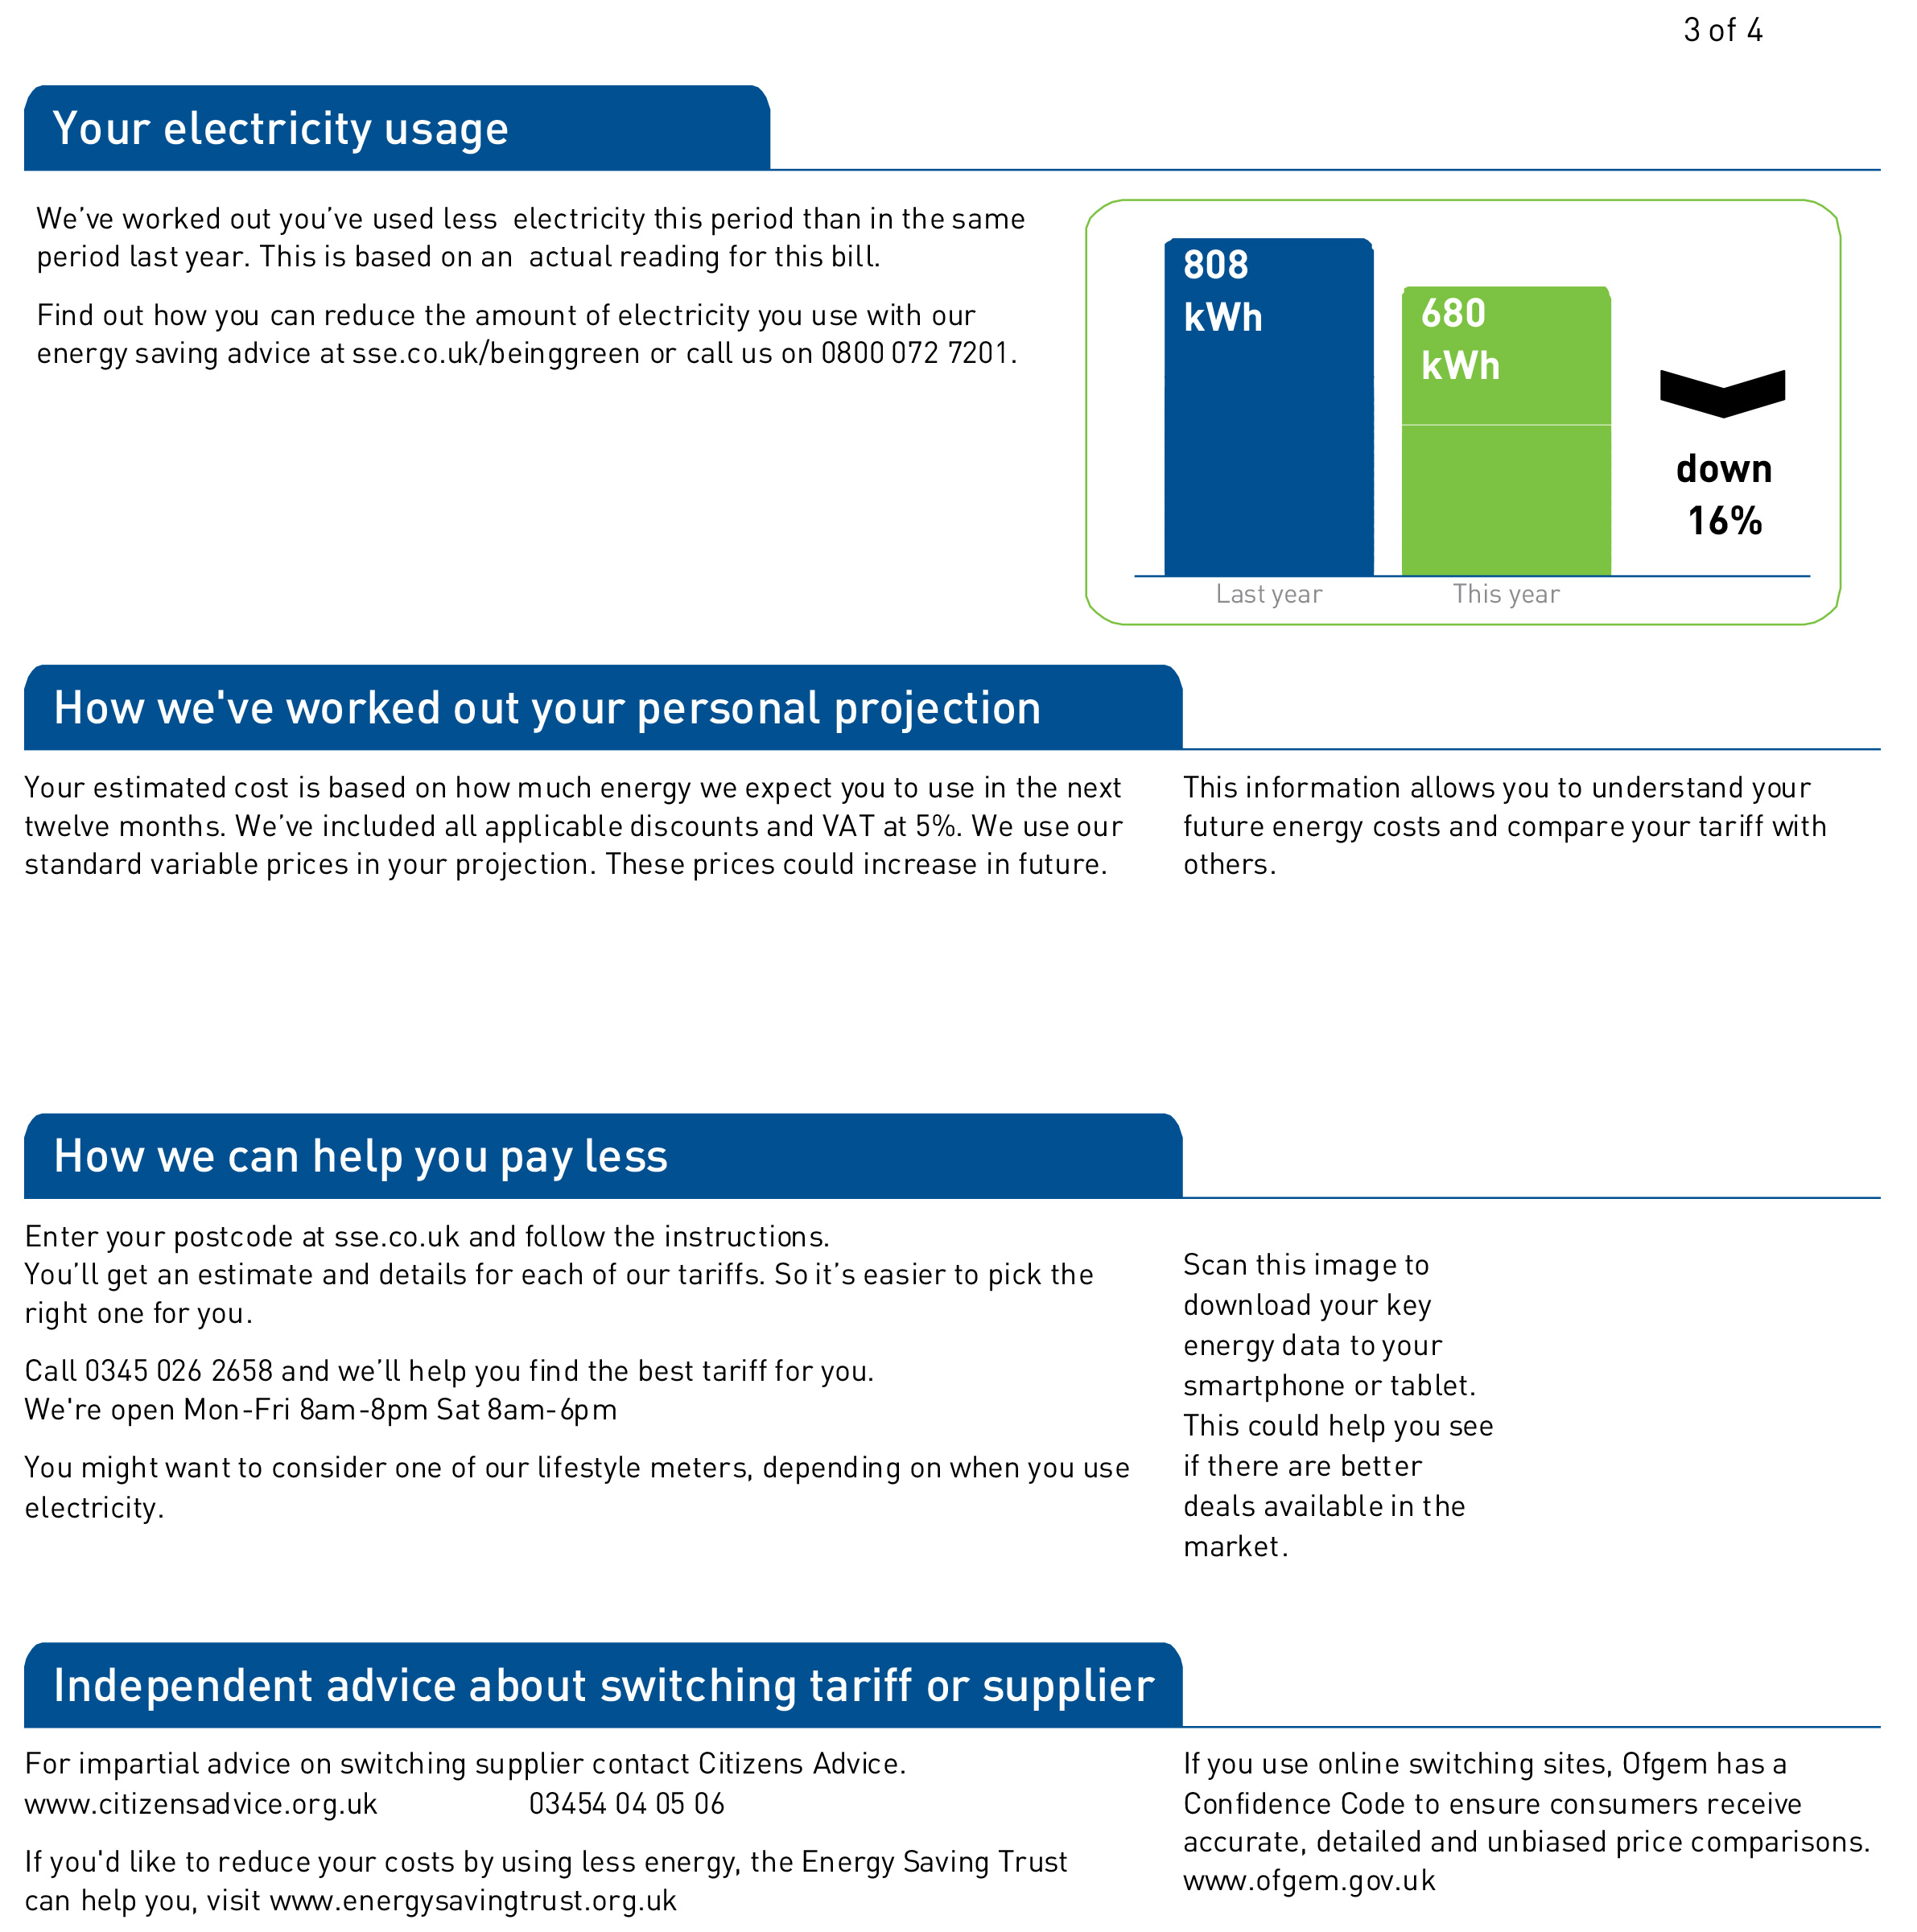 SSE energy bill page 3